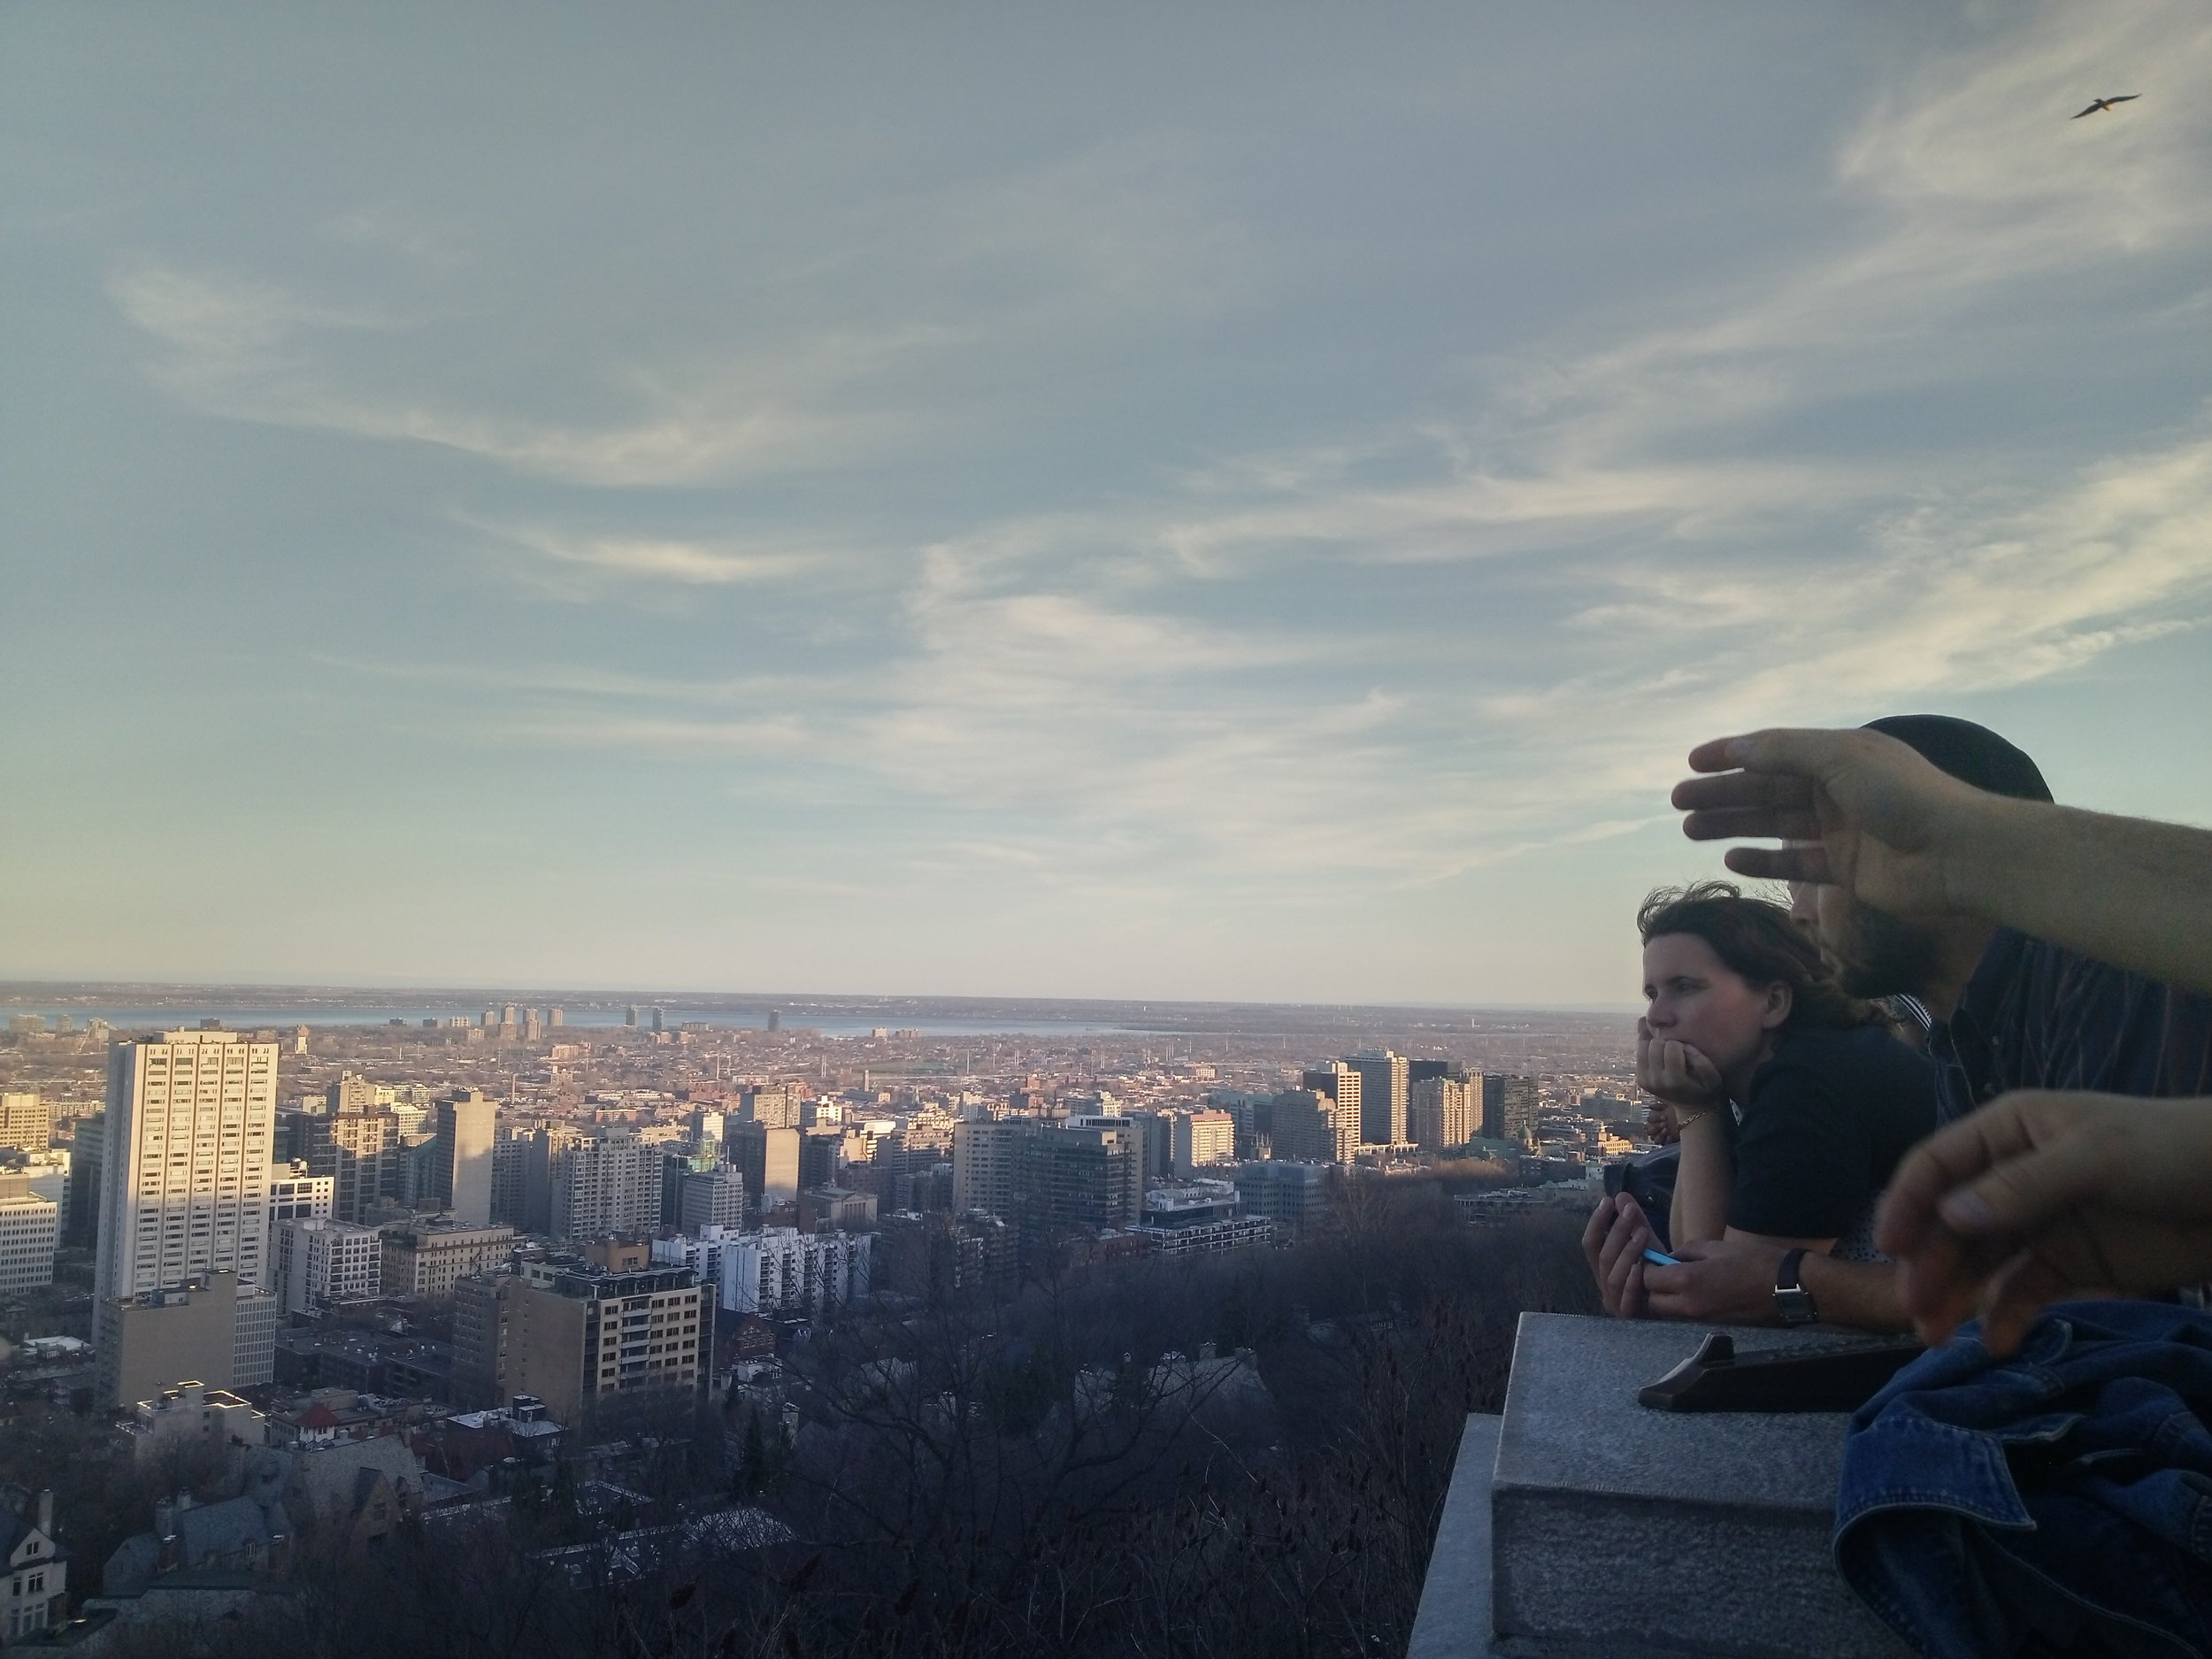 Jo looking out over Montreal.